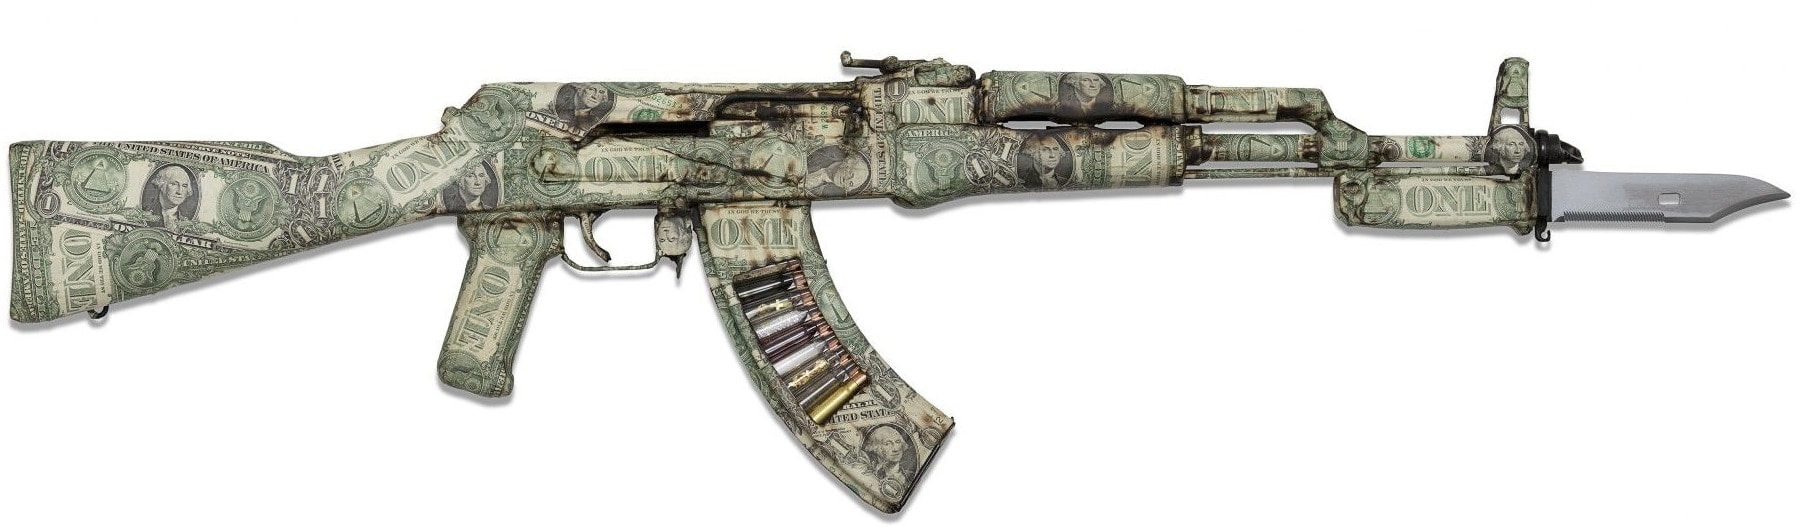 """Spoils of war"" is a decommissioned AK47 crafted by British artist Bran Symondson and covered in real $1 dollar bills. Within the magazine there are clear 7.62 empty rounds each holding a commodity that creates conflict around the world, Oil, Gold, diamonds etc. (Photo and caption: Maddox Gallery)"